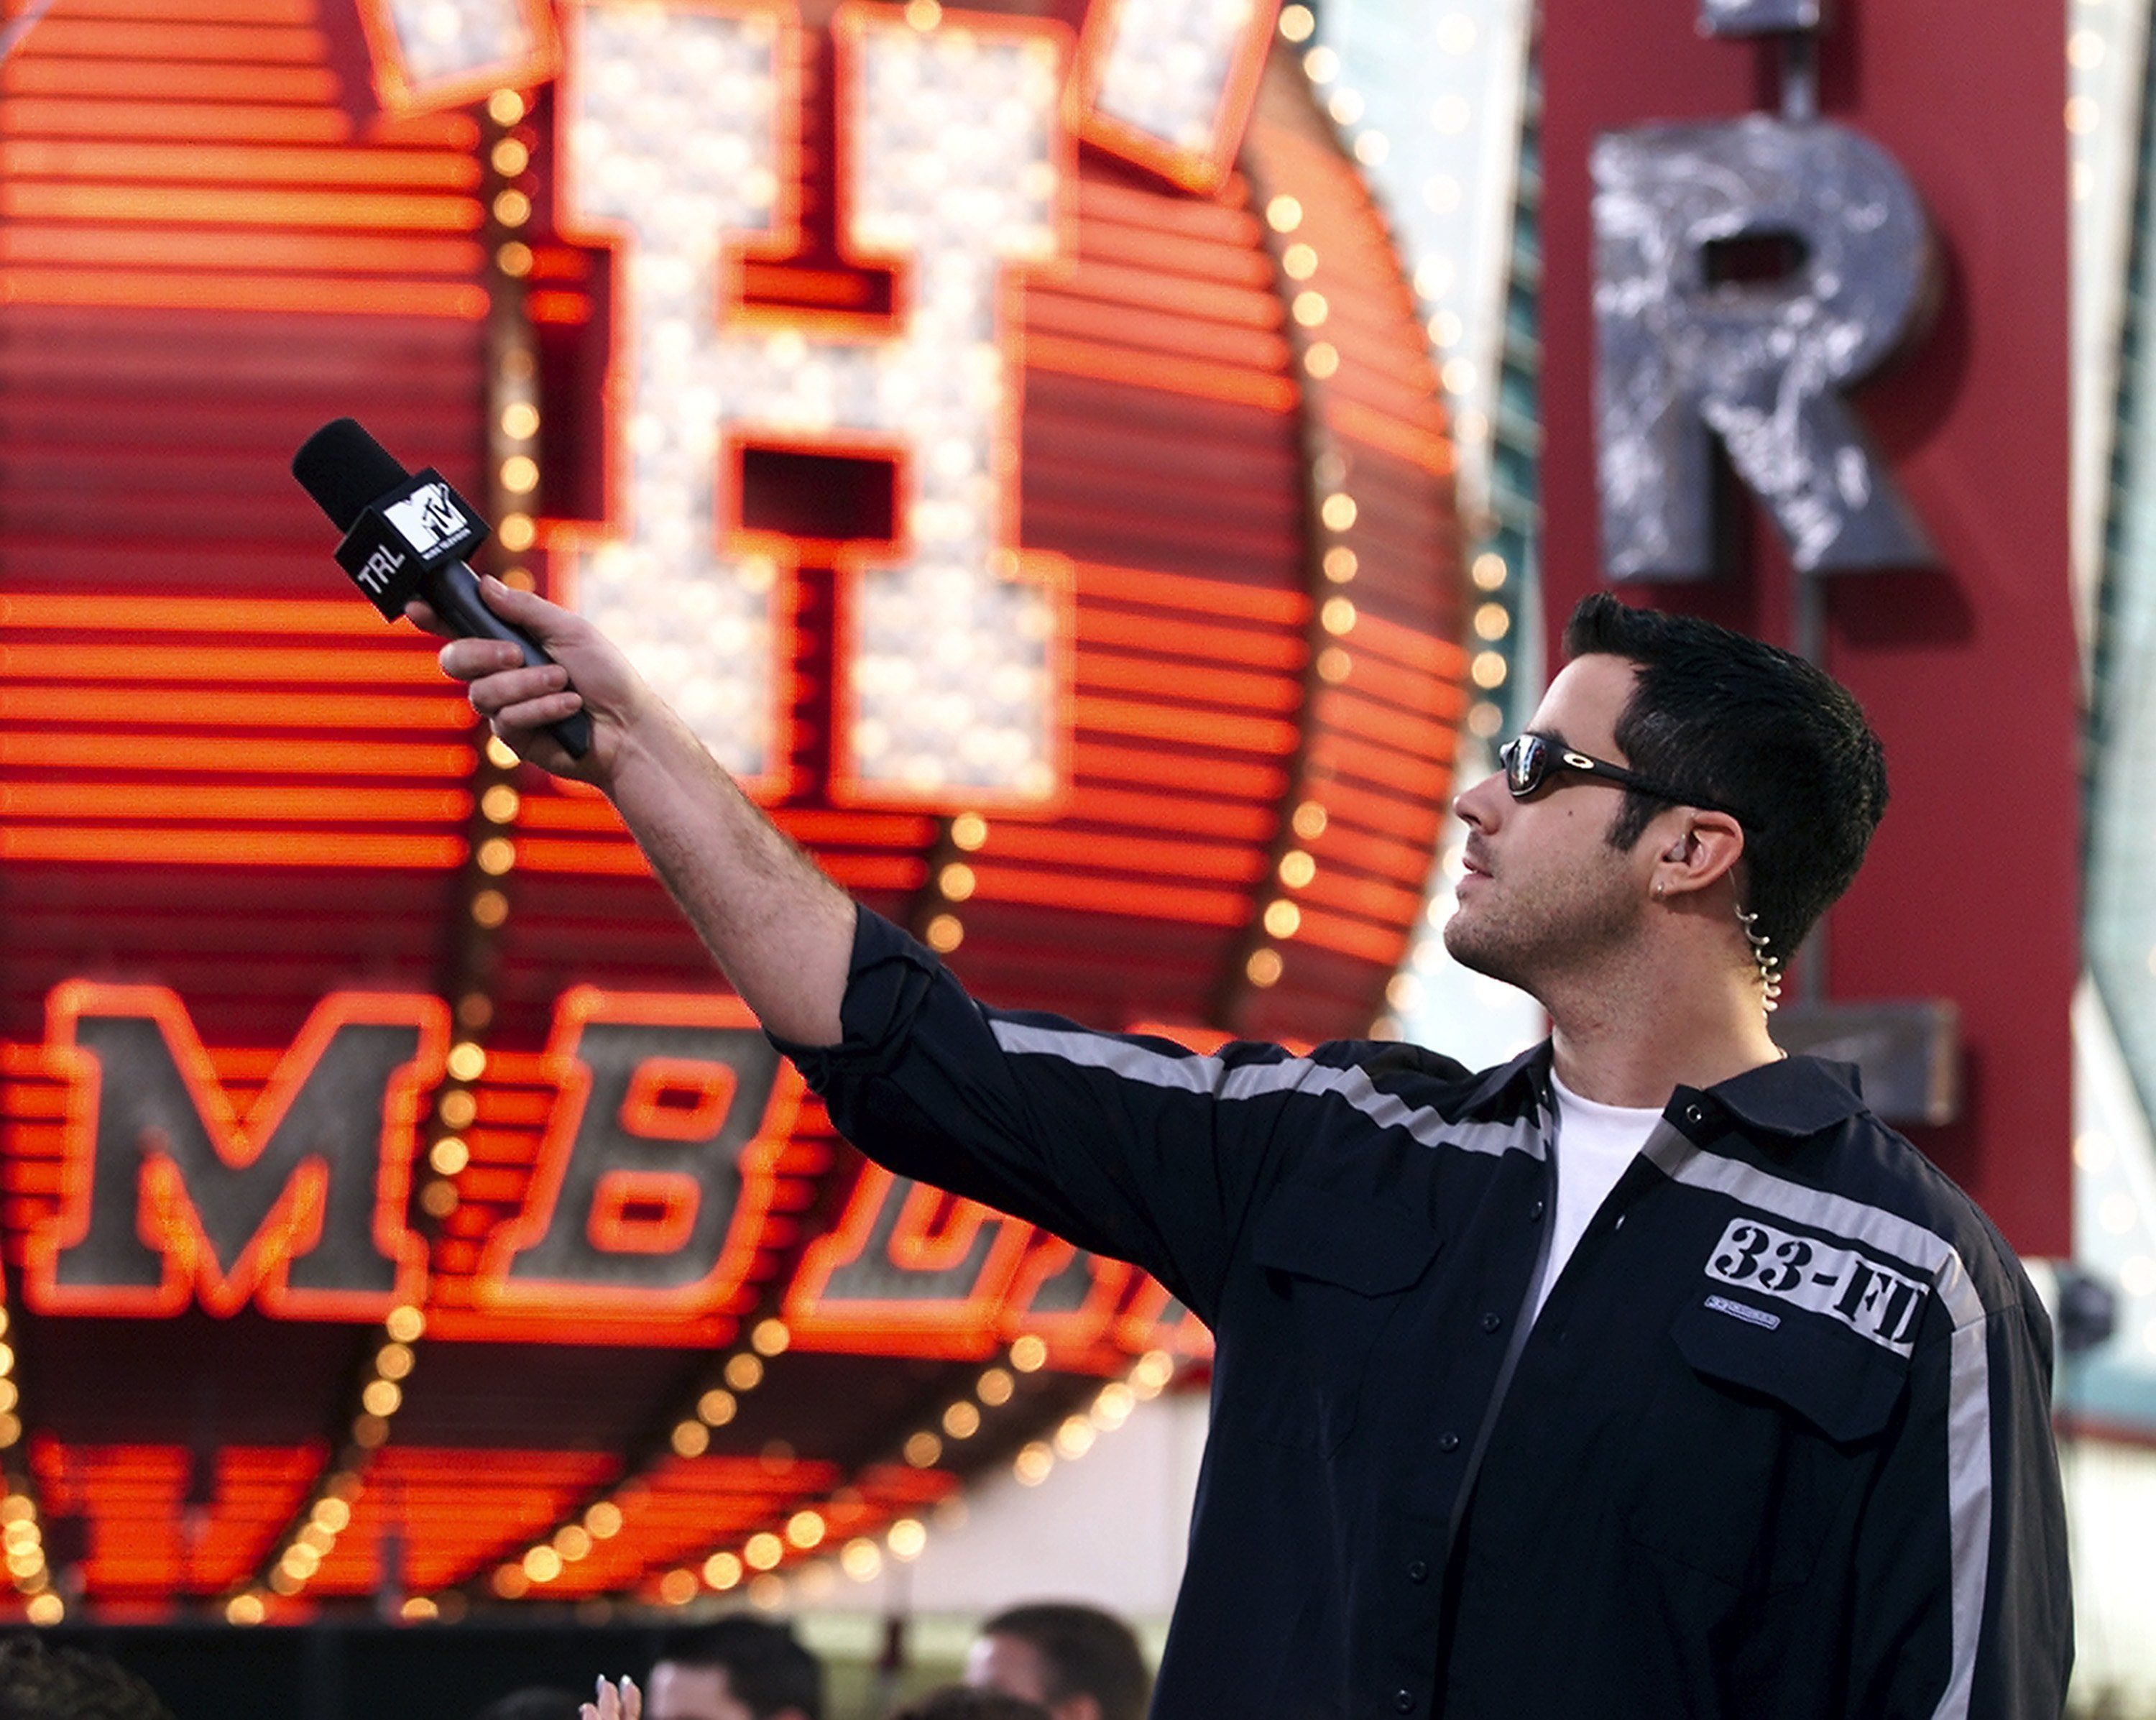 Host Carson Daly holds a microphone out while taping segments for MTV's 'Total Request Live' Spring Break show at the Fremont Street Experience March 11, 2000 in Las Vegas, Nevada.  (Photo by Ethan Miller/Getty Images)